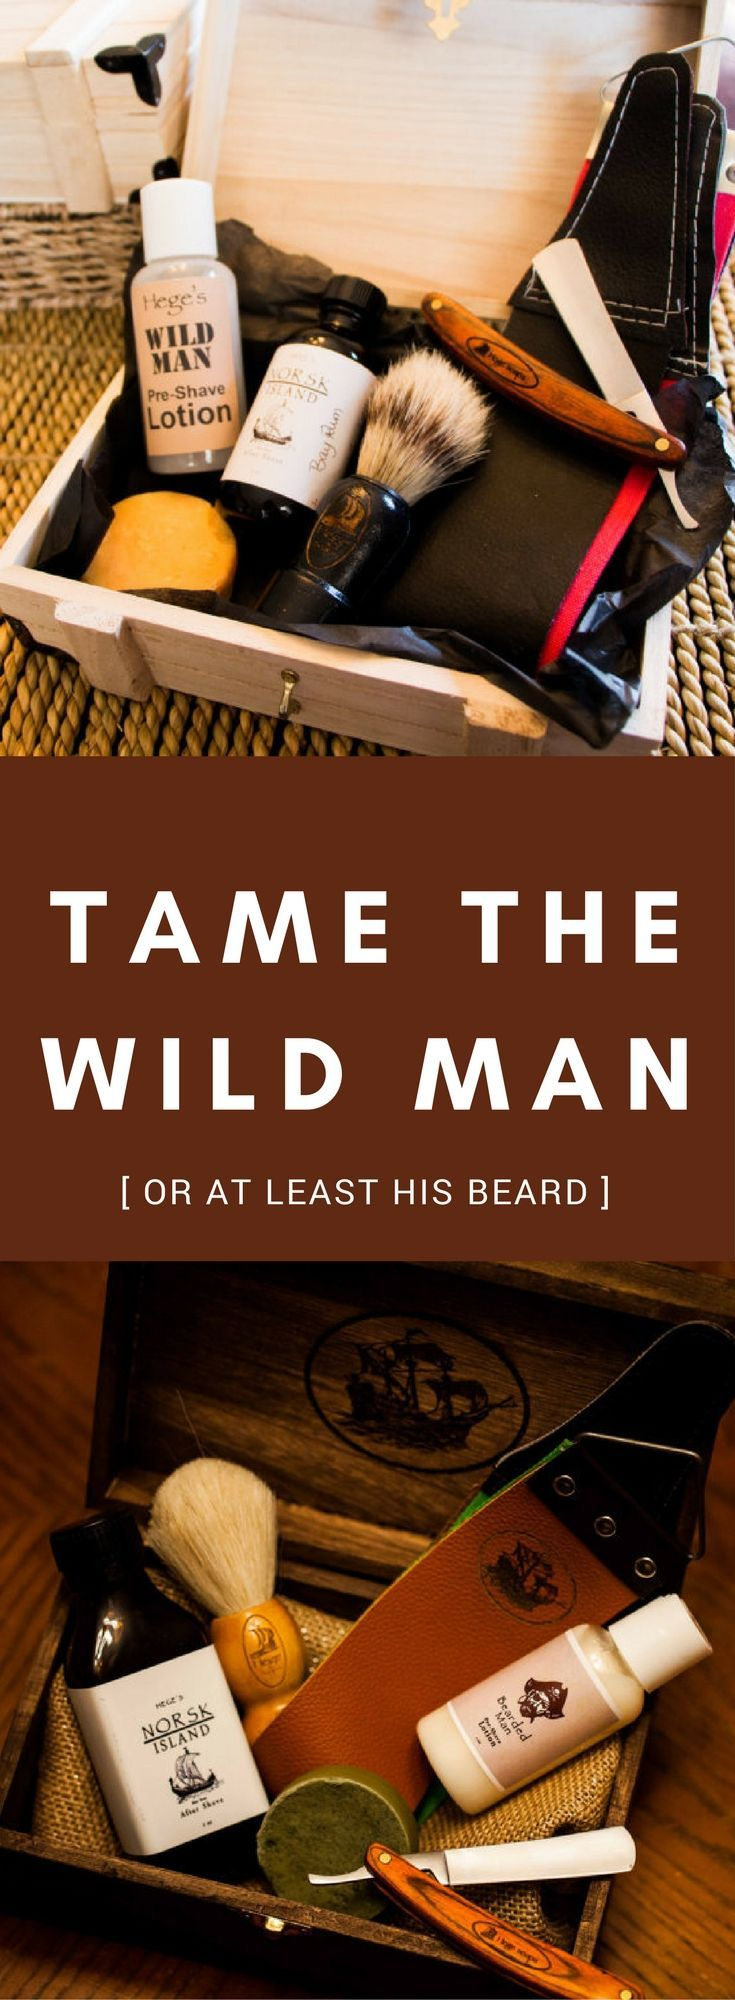 a close comfortable shave just like they used to do in the wild west :) This shaving kit contains a wonderful pre-shave lotion, shaving soap, a boar or badger bristle shaving brush, and a wood handle straight razor, strop for sharpening, and soothing Bay